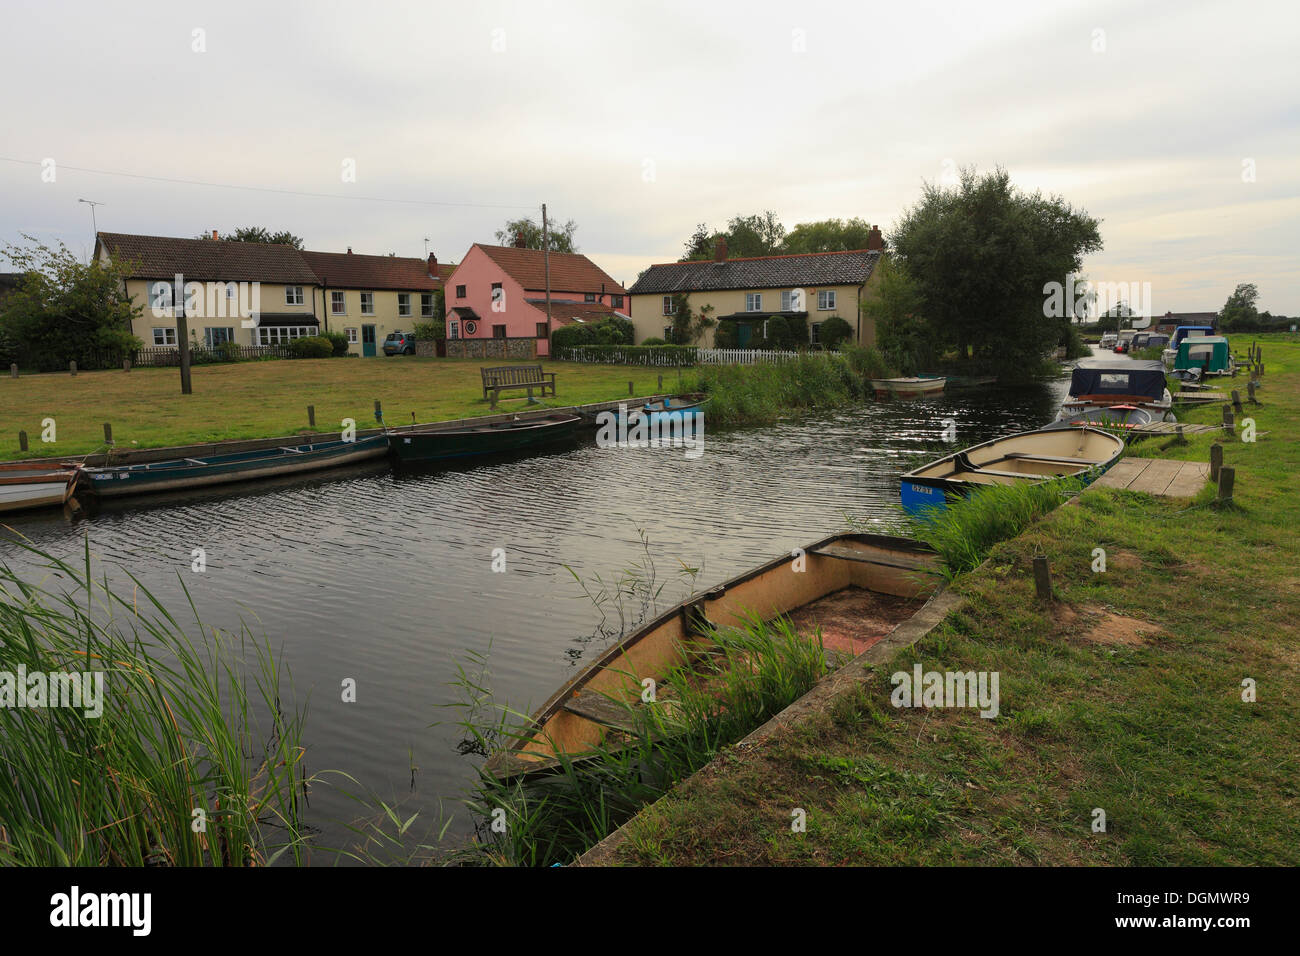 The village of West Somerton on the Norfolk Broads. - Stock Image